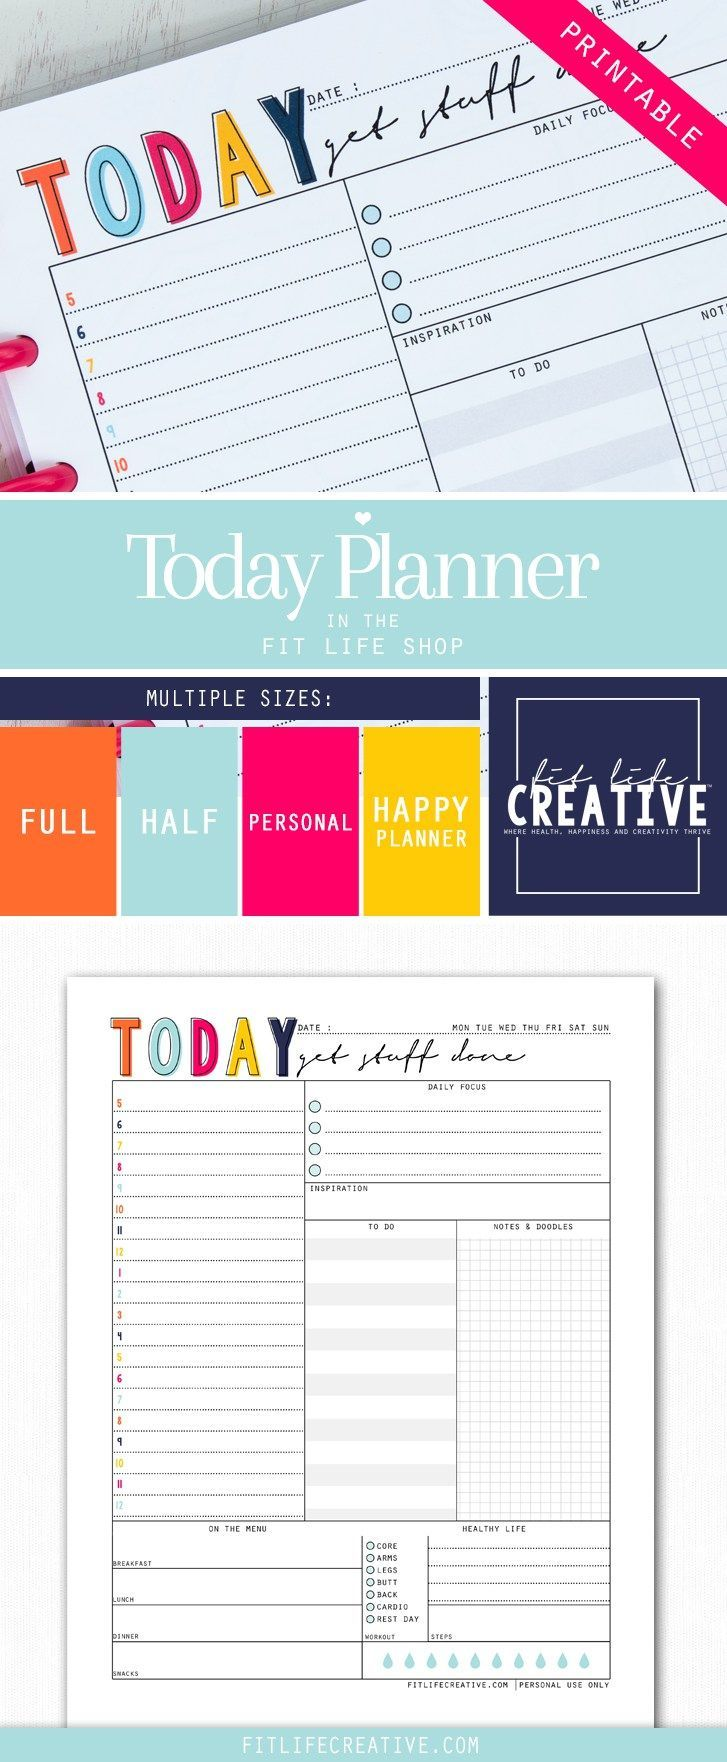 printable daily planner  map out your entire day from task to fitness with the today planner